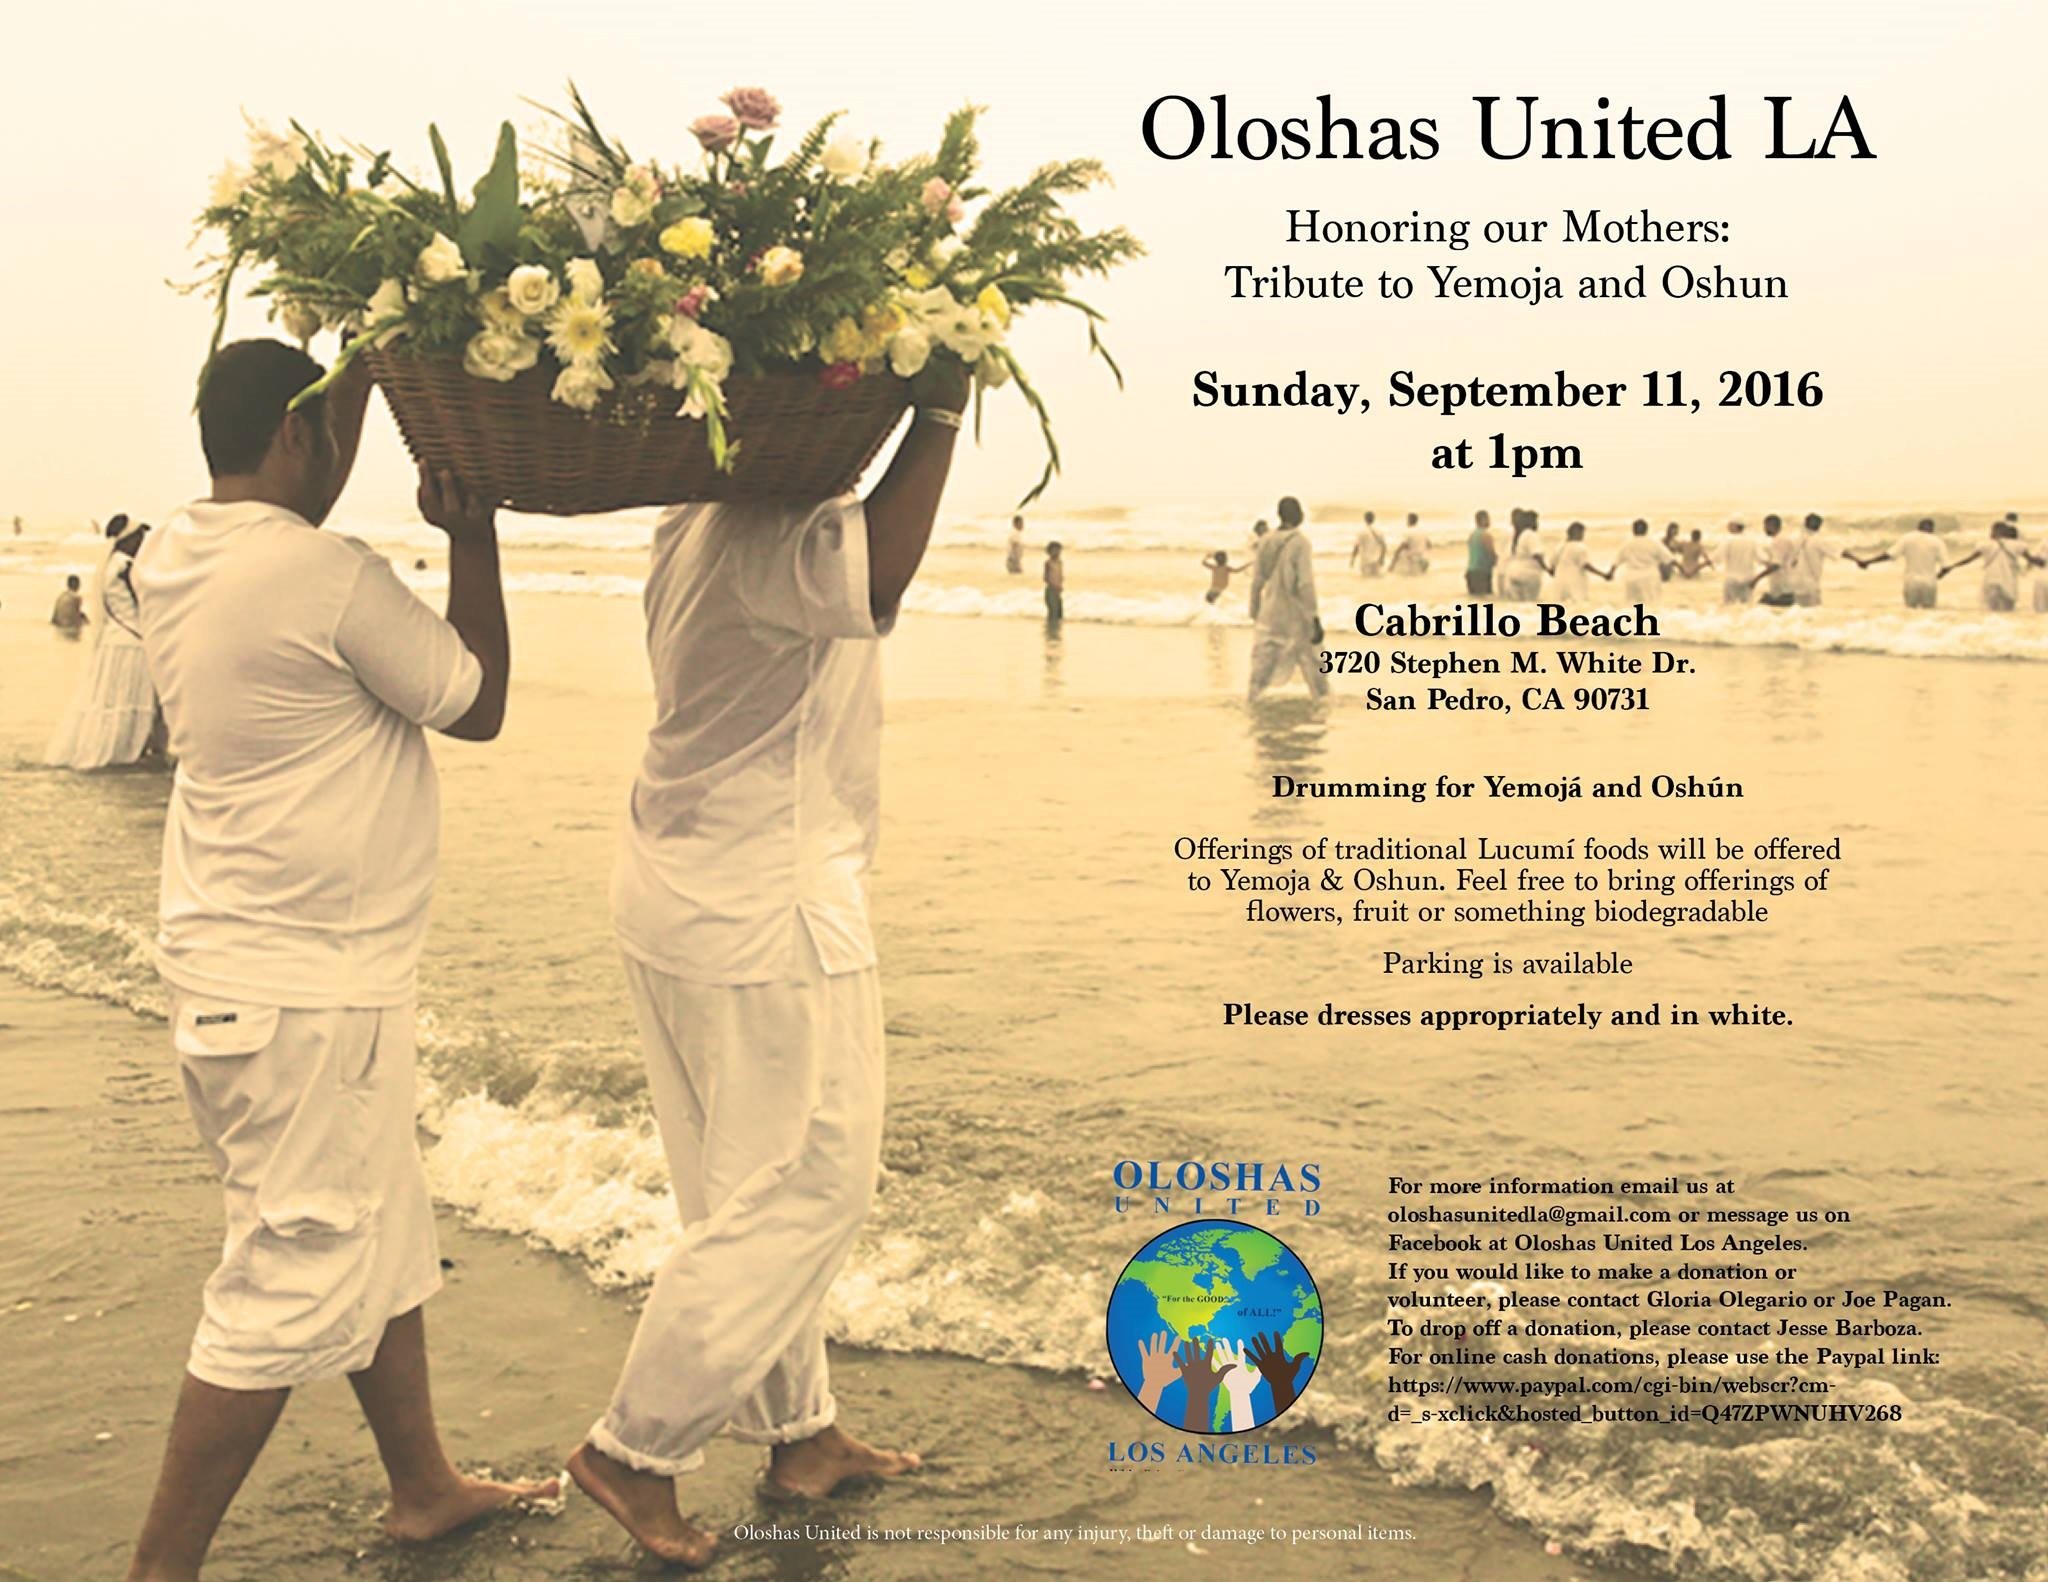 Oloshas United LA Tribute to Yemoja and Oshun